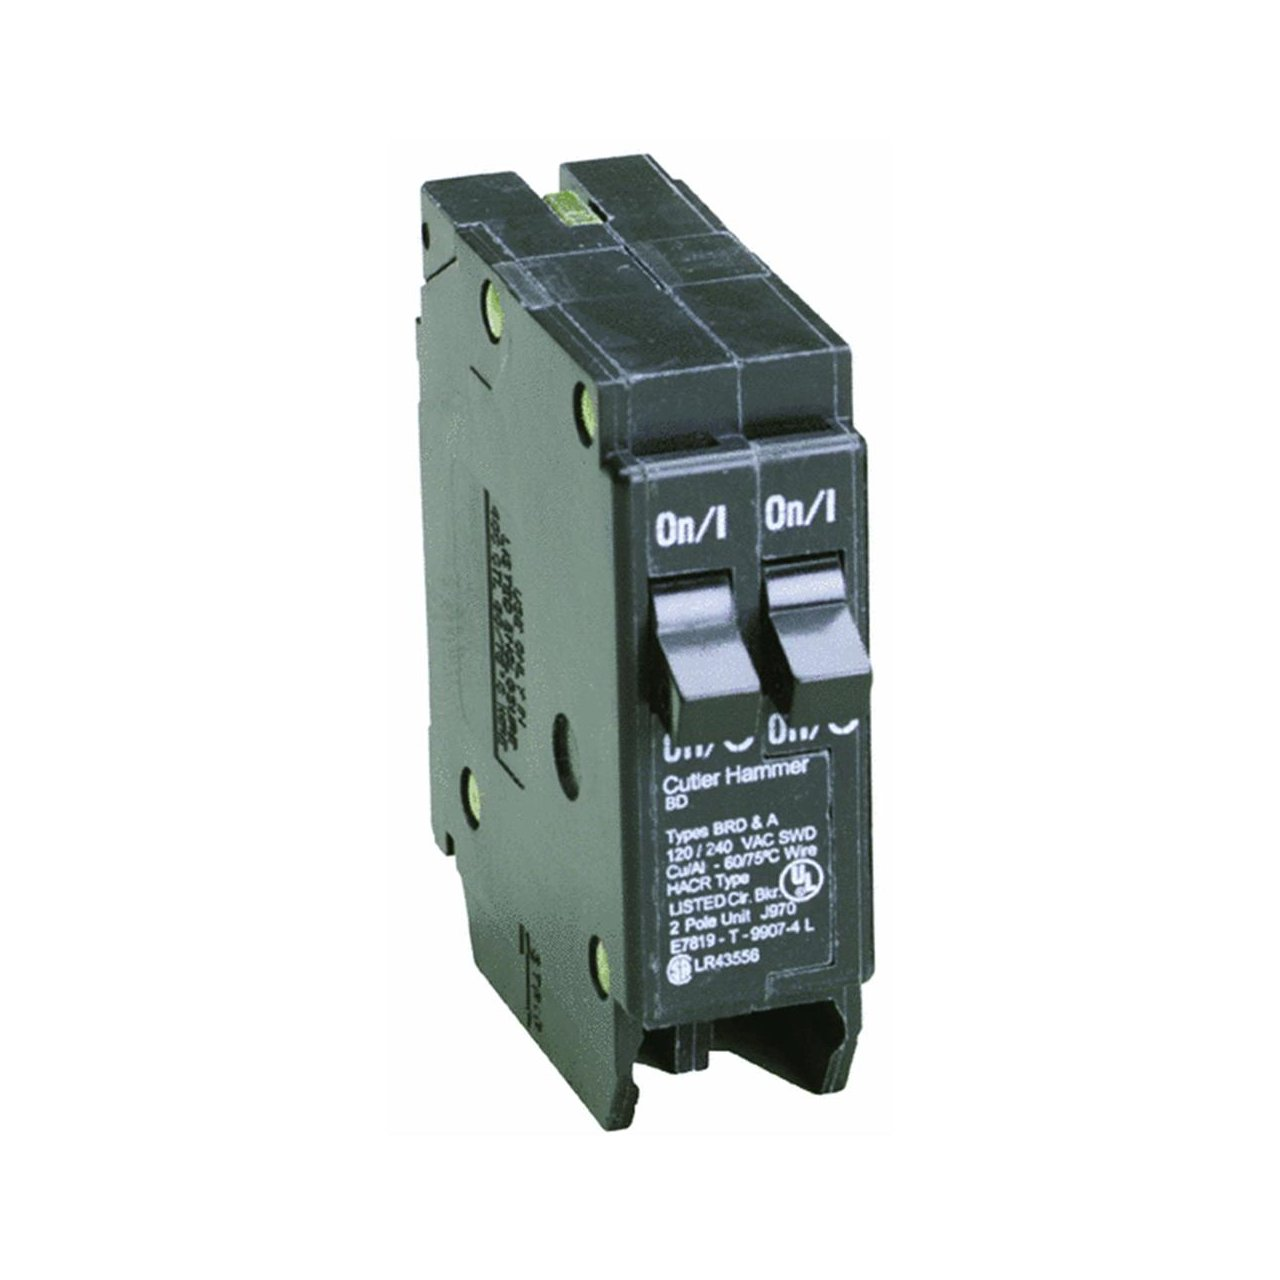 Best Rated In Miniature Circuit Breakers Helpful Customer Reviews Old Schneider Fuse Box Cutler Hammer Duplex Breaker Bd2020 Product Image